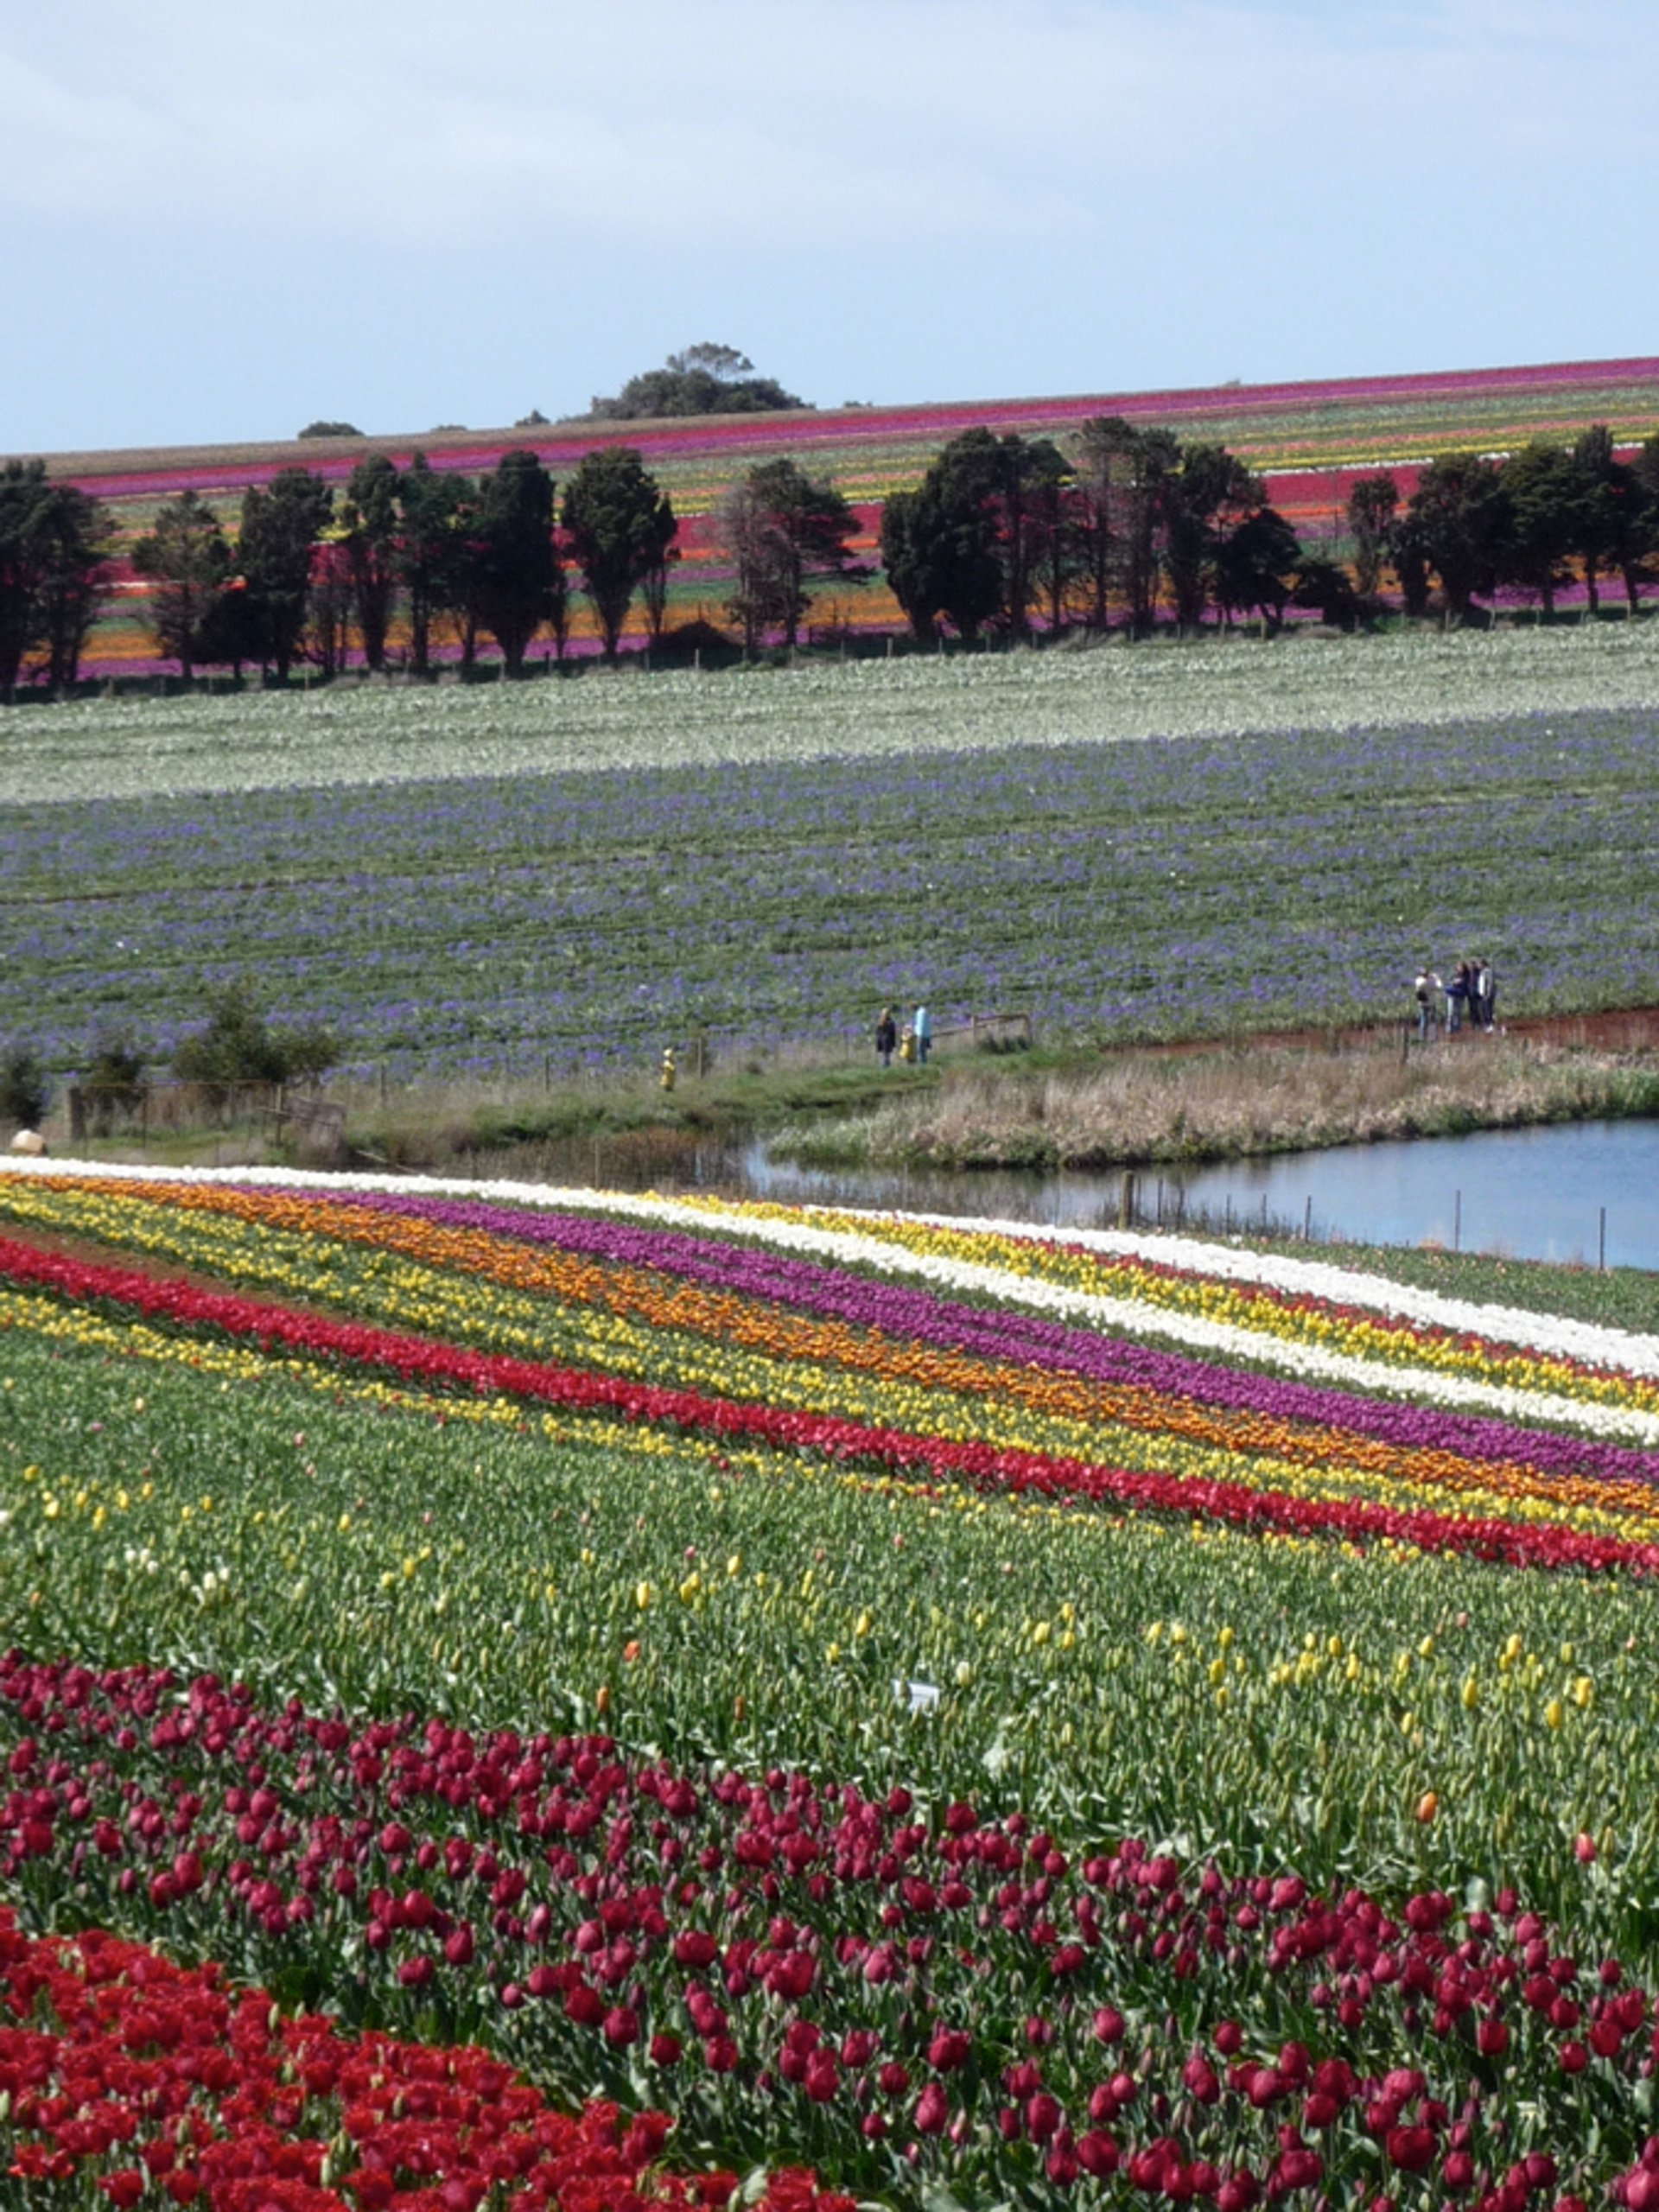 Best time to see Blooming Tulips in Tasmania 2020